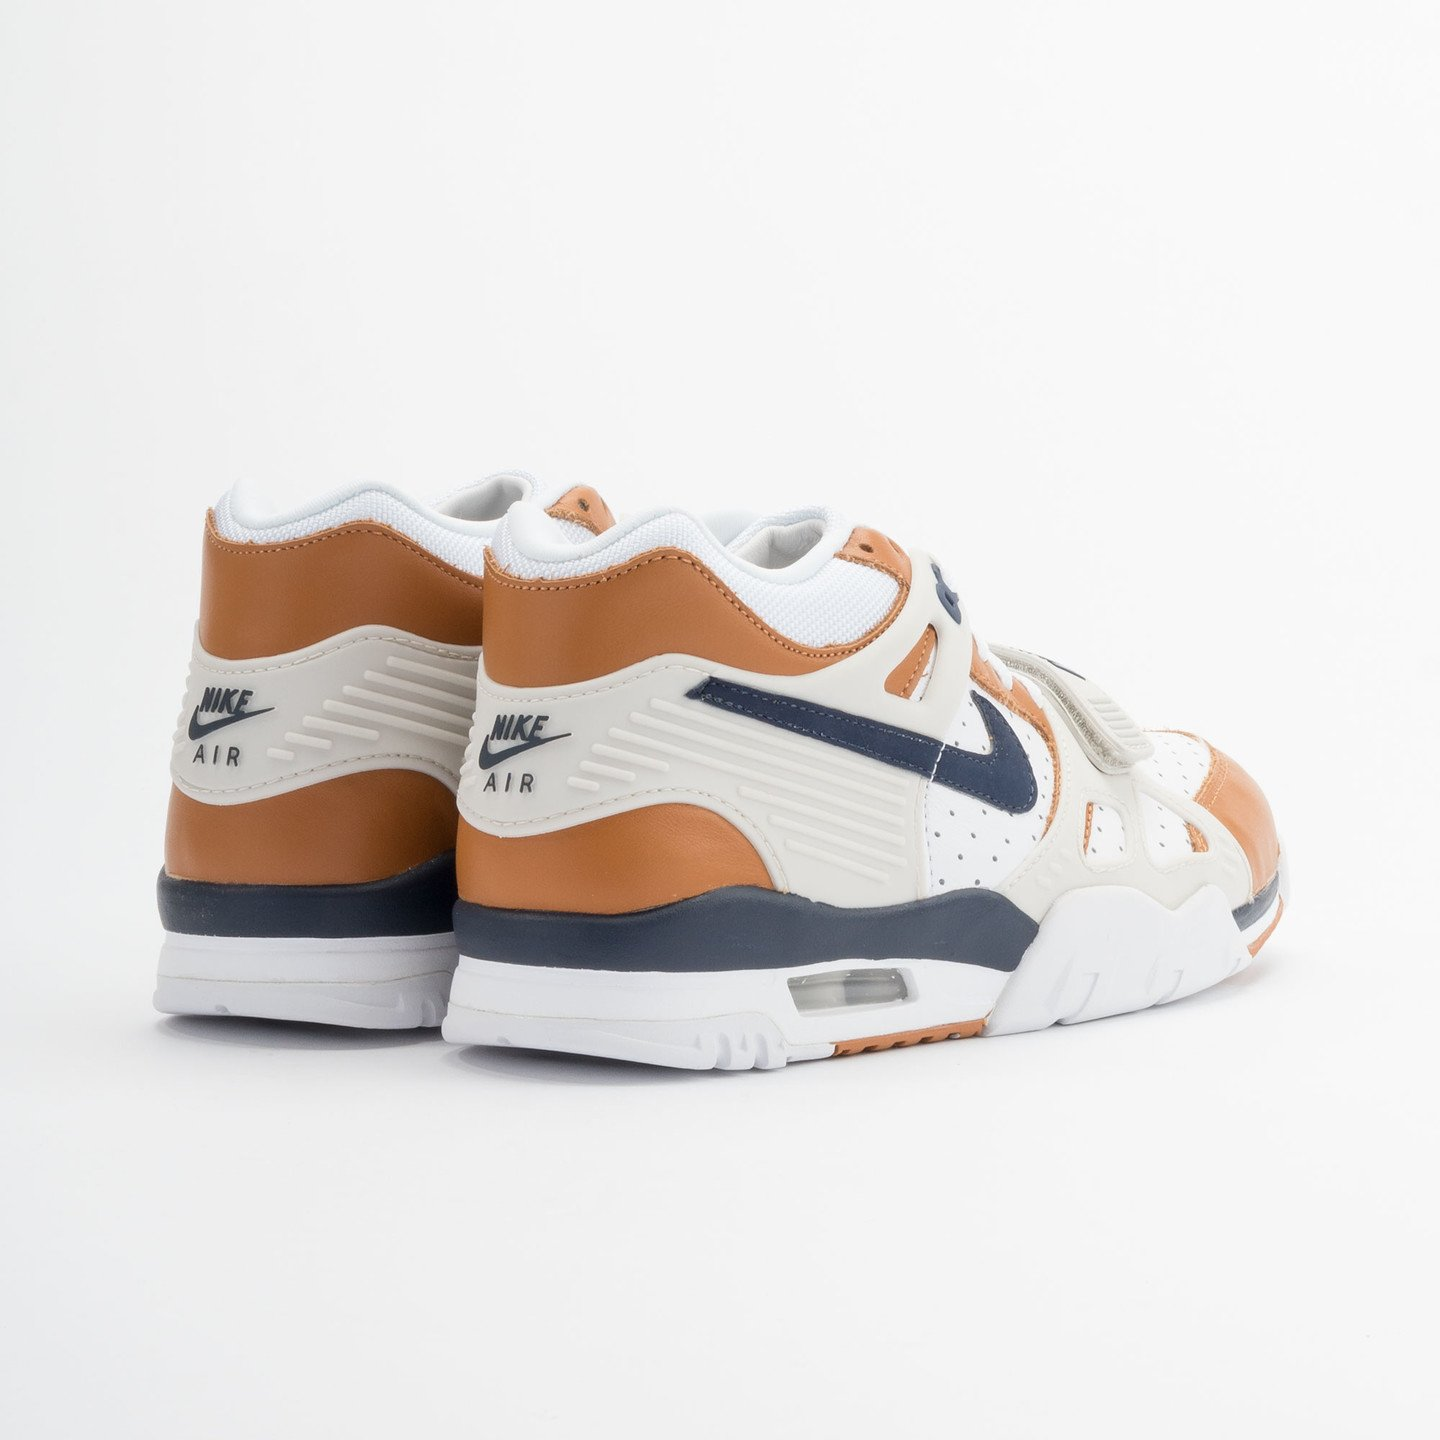 Nike Air Trainer 3 Premium Medicine Ball White/Mid Navy-Gngr-Lght Bn 705425-100-42